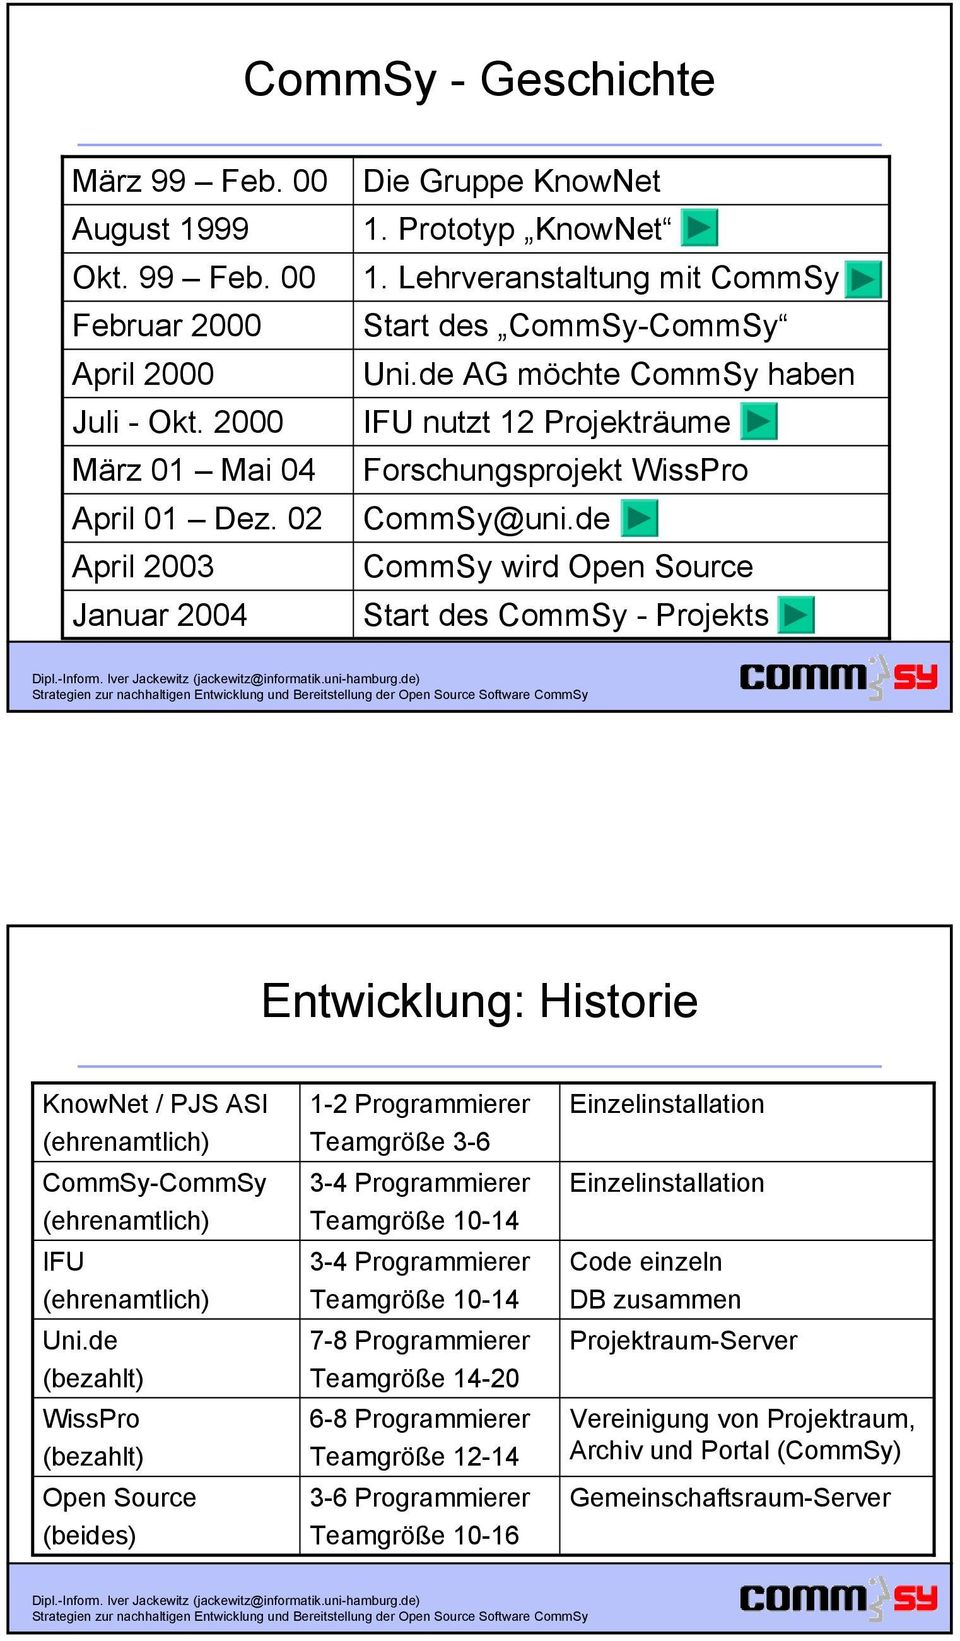 de CommSy wird Open Source Start des CommSy - Projekts Entwicklung: Historie KnowNet / PJS ASI (ehrenamtlich) CommSy-CommSy (ehrenamtlich) IFU (ehrenamtlich) Uni.